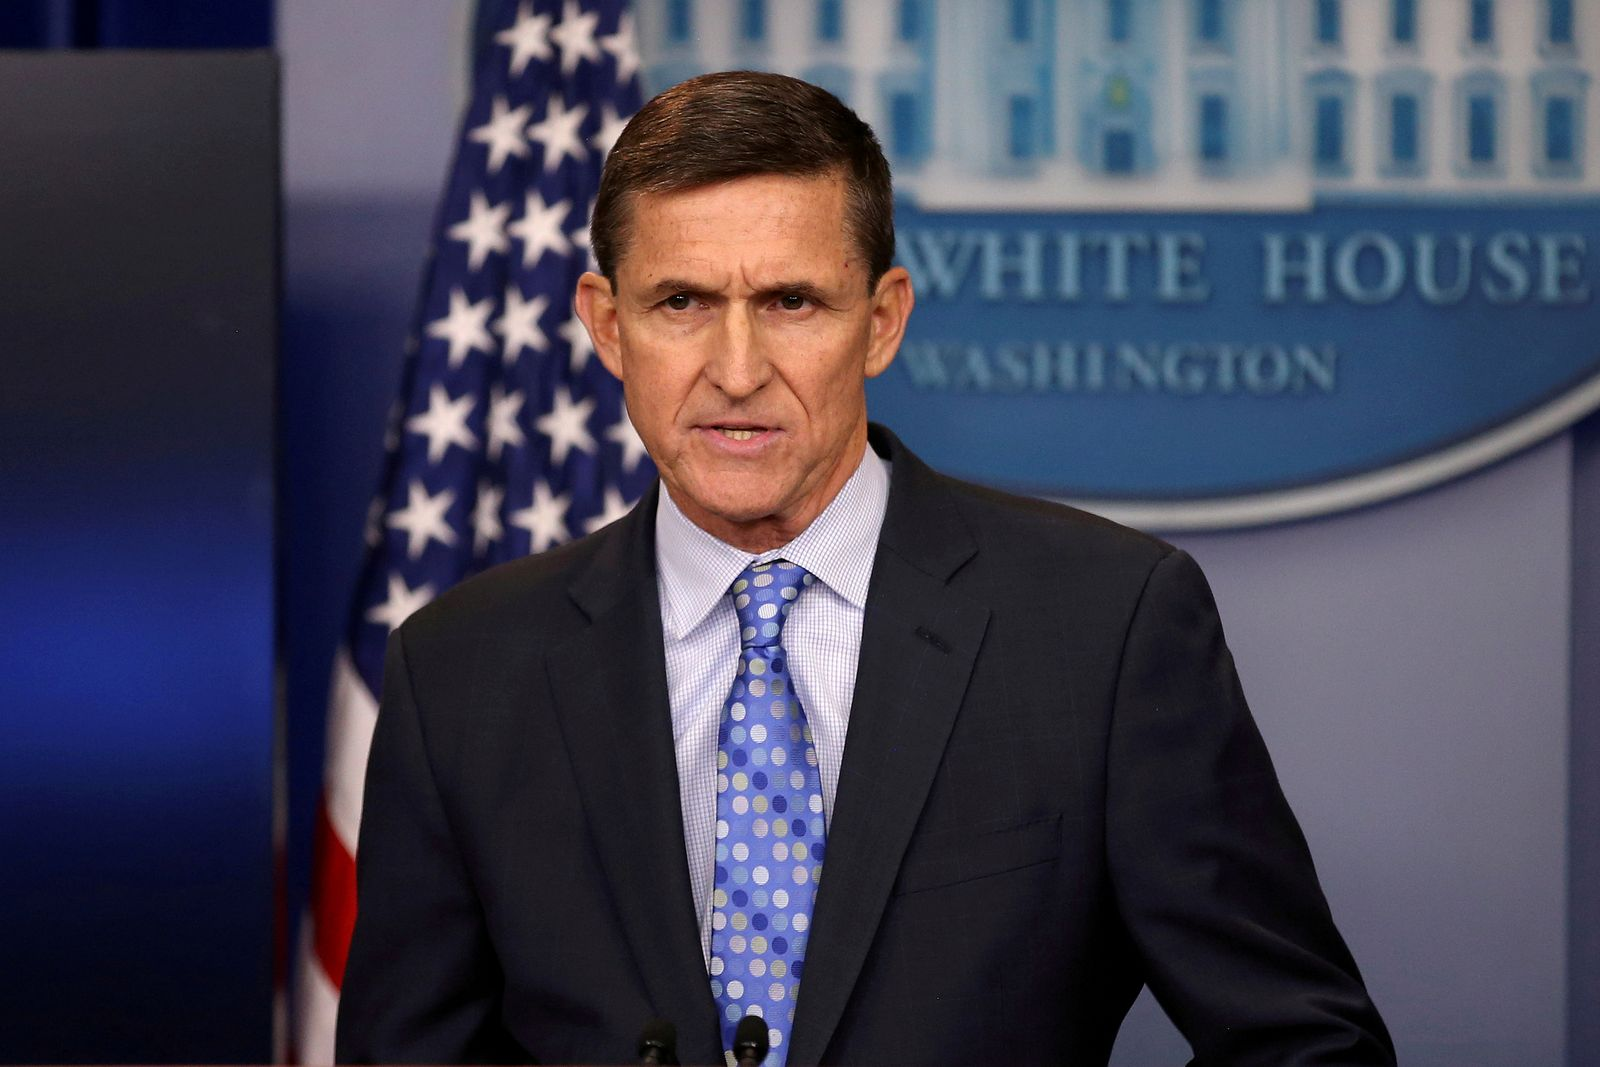 FILE PHOTO: Then national security adviser General Michael Flynn delivers a statement daily briefing at the White House in Washington